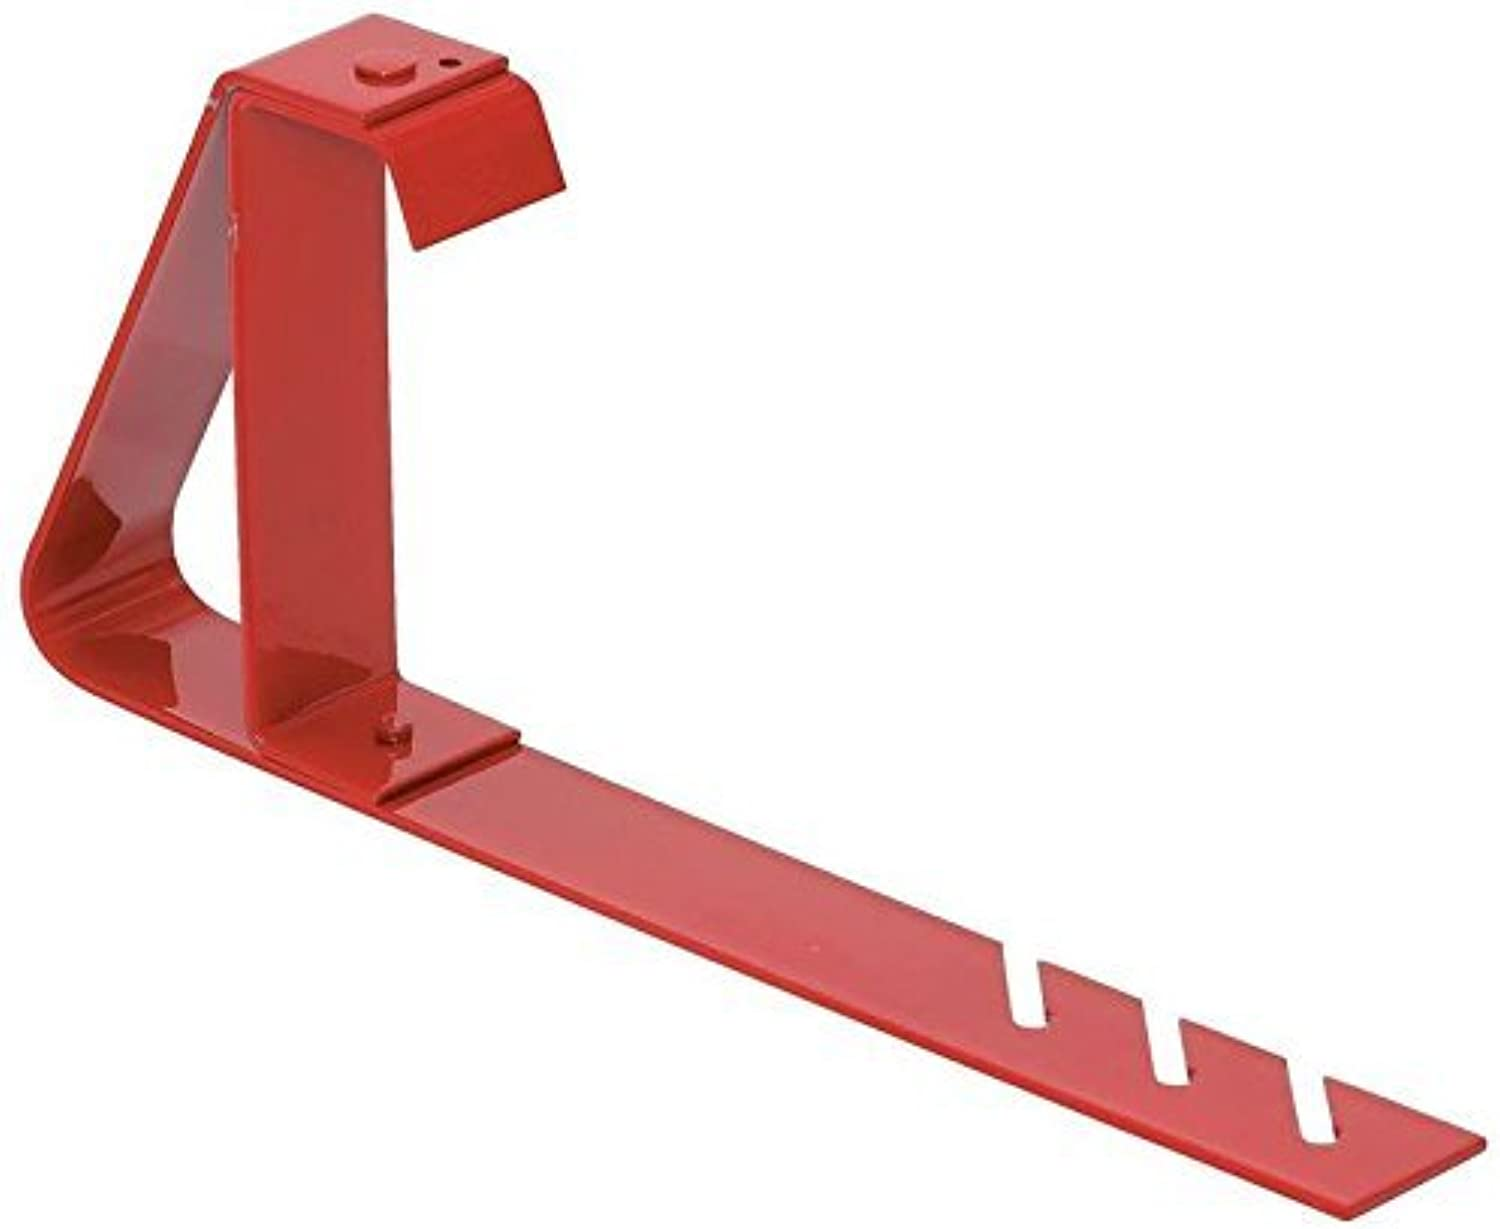 10 Pack Qual-Craft 2502 Roofing Brackets Fixed Fixed Fixed Angle 90- 6  Platform by Qual-Craft Industries B0186IQHZO | Sale  38f3fe